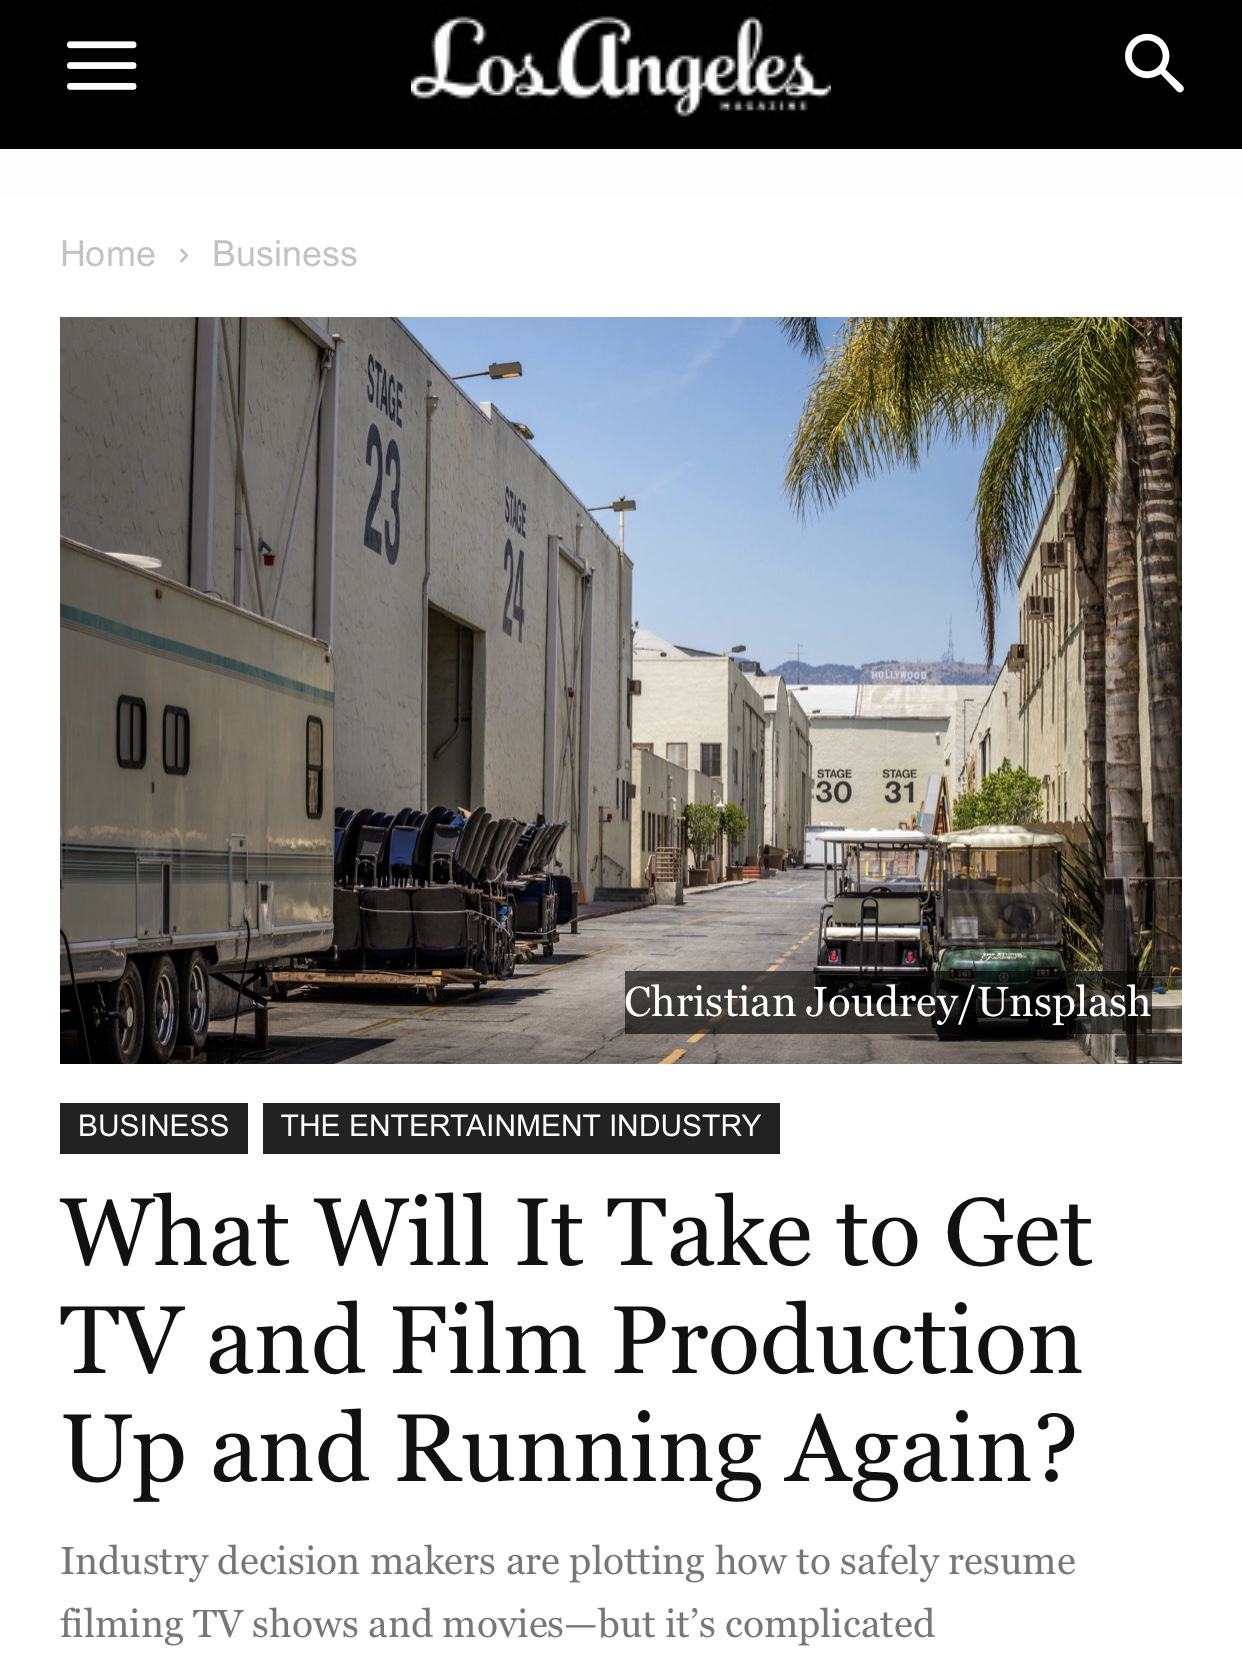 When Will Hollywood TV and Film Production Resume?